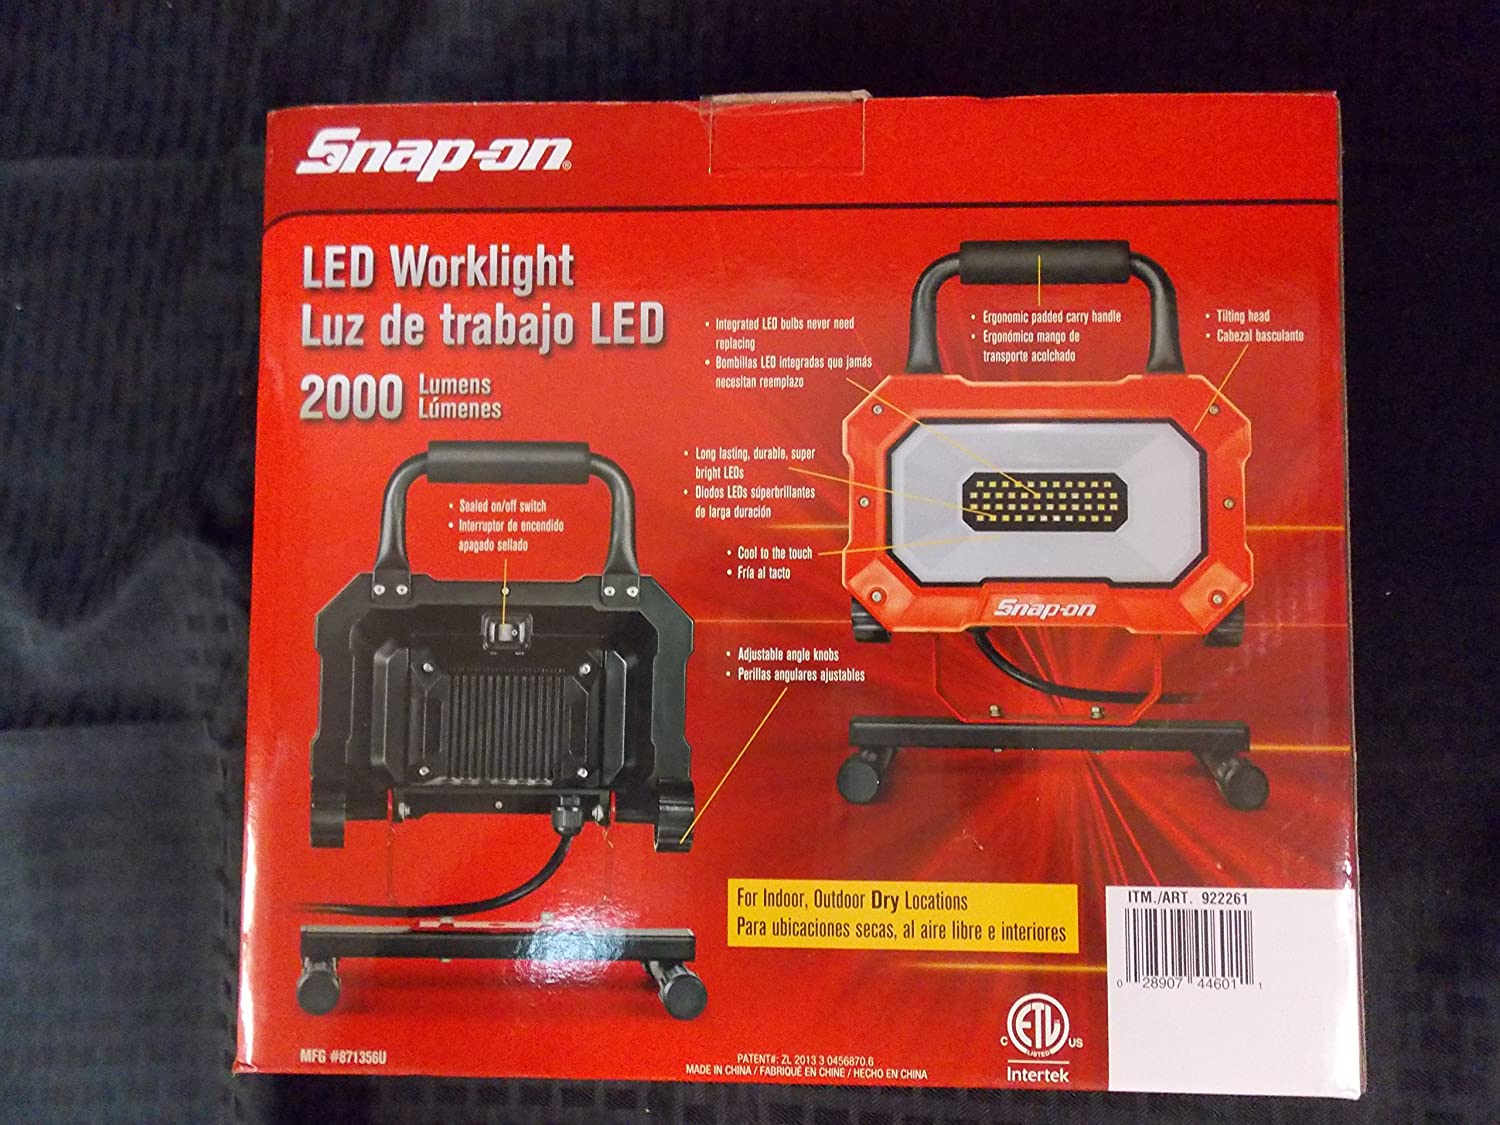 Snap-On LED Worklight 25 Wattage=2000 Lumens, Awesome Worklight, Part #922261 - - Amazon.com